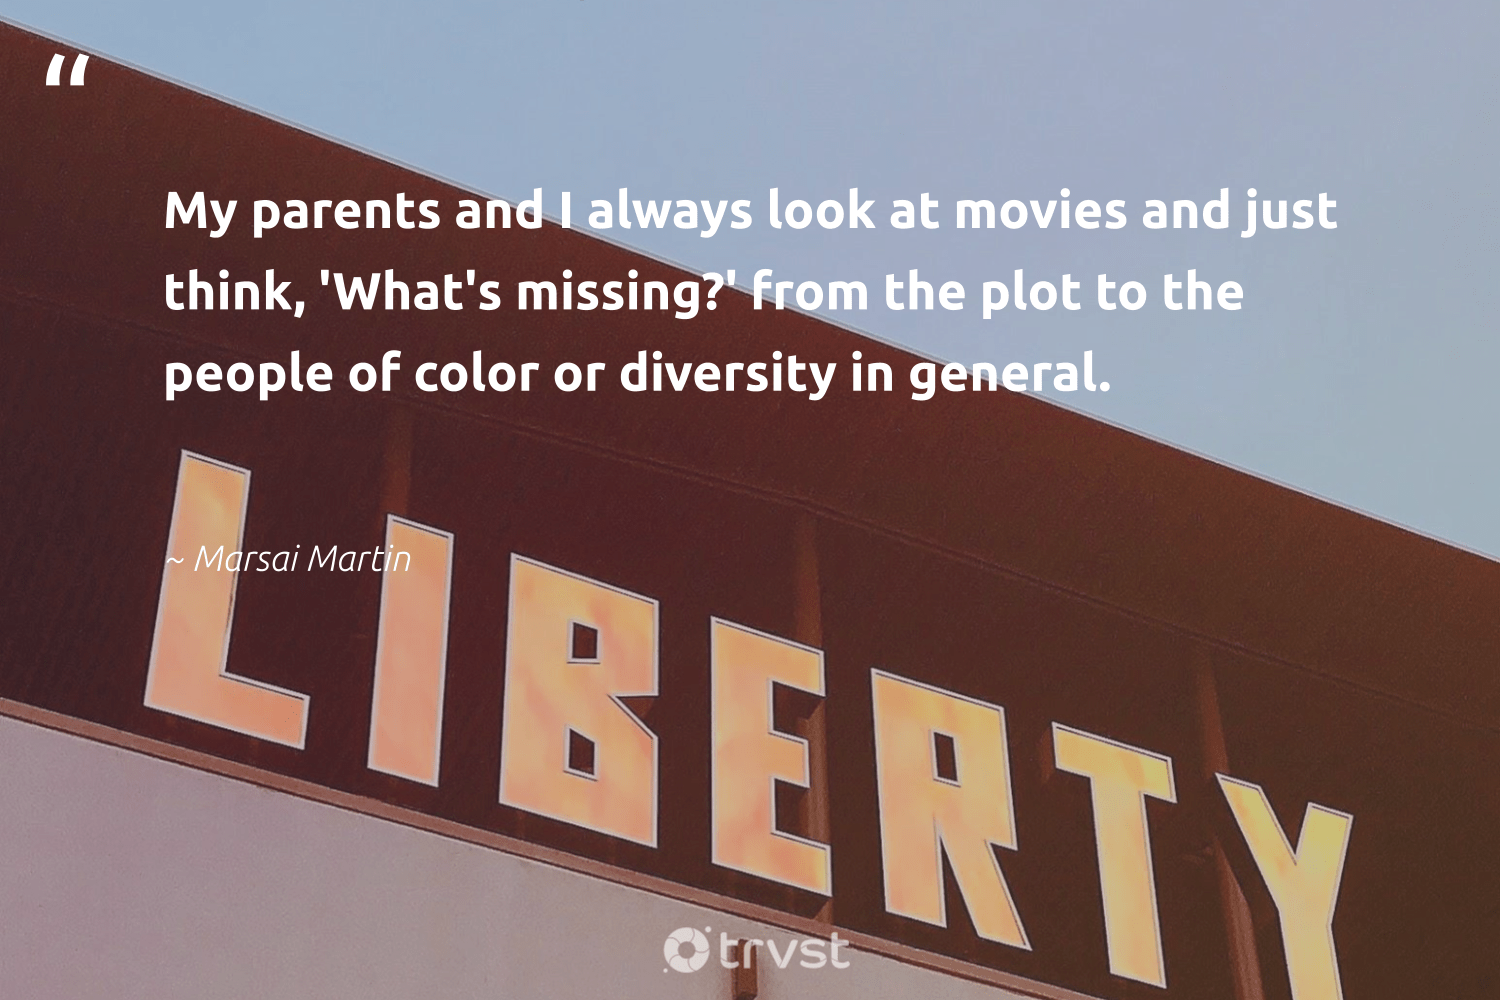 """My parents and I always look at movies and just think, 'What's missing?' from the plot to the people of color or diversity in general.""  - Marsai Martin #trvst #quotes #diversity #peopleofcolor #discrimination #inclusion #makeadifference #socialgood #bethechange #representationmatters #socialchange #weareallone"